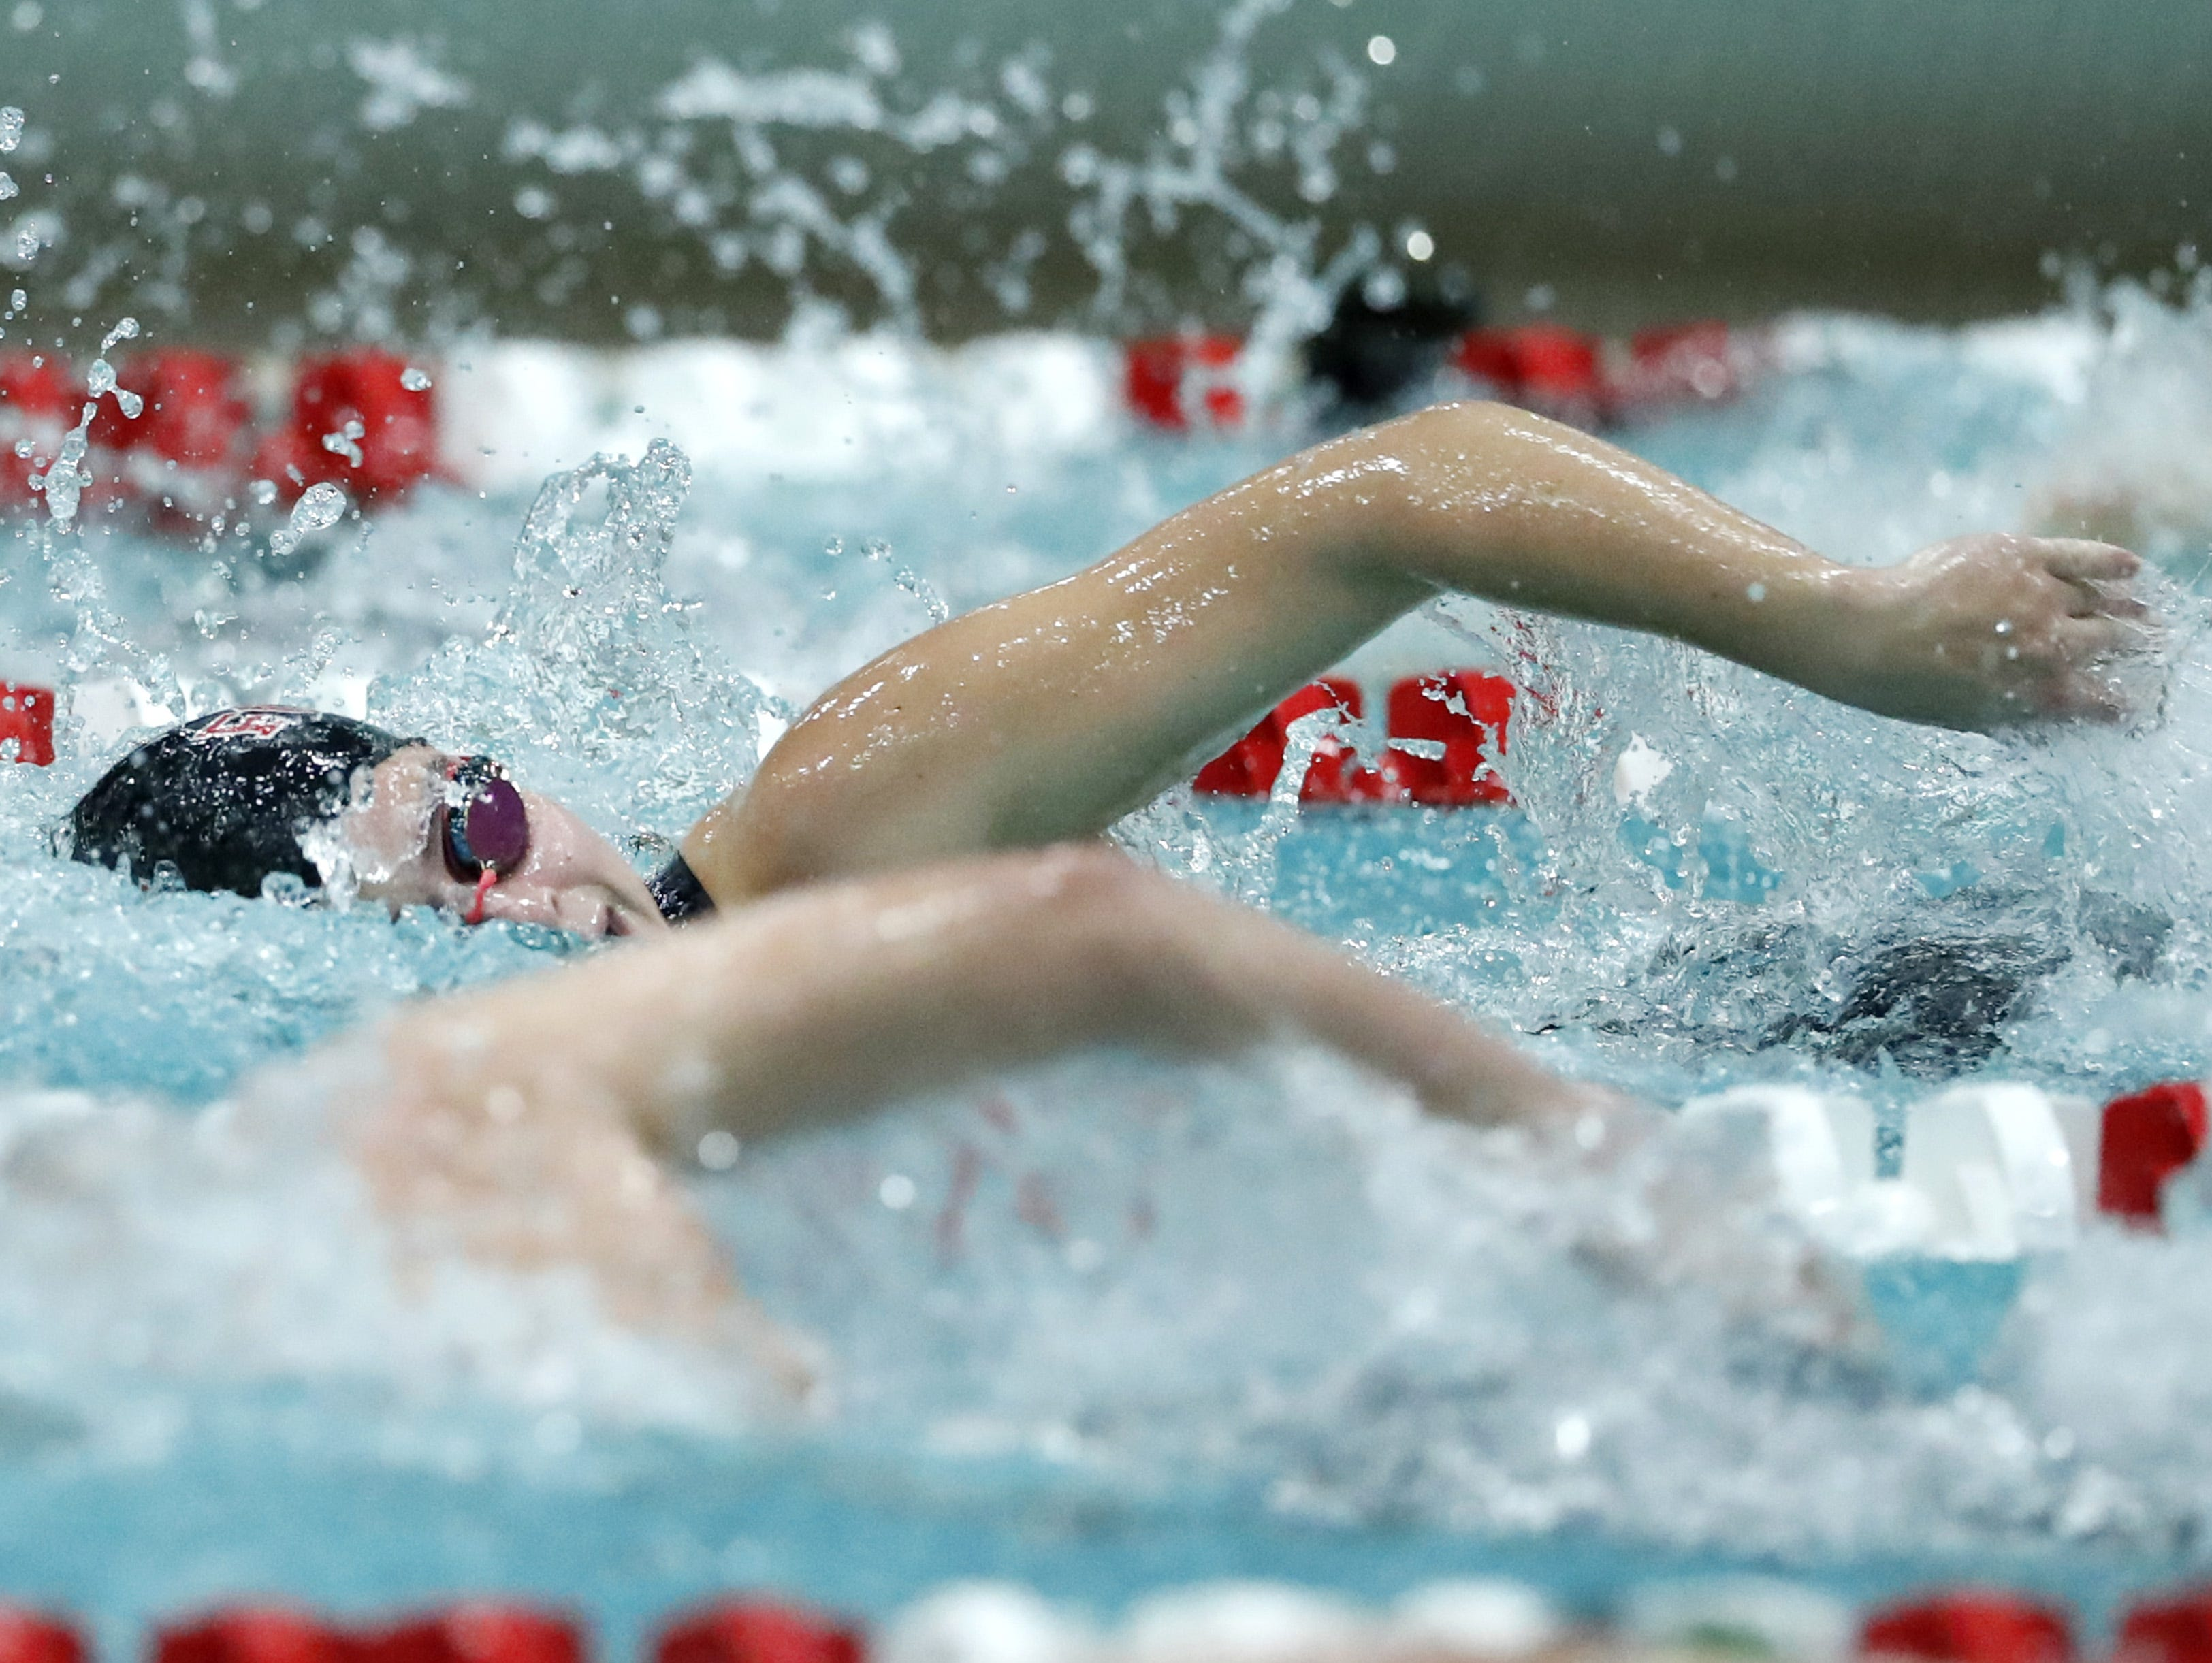 Fond du LacÕs Isabella Jones races in the 200 yard freestyle during the WIAA Division 1 State Swimming and Diving meet Saturday, Nov. 10, 2018, at the UW Natatorium in Madison, Wis. Danny Damiani/USA TODAY NETWORK-Wisconsin